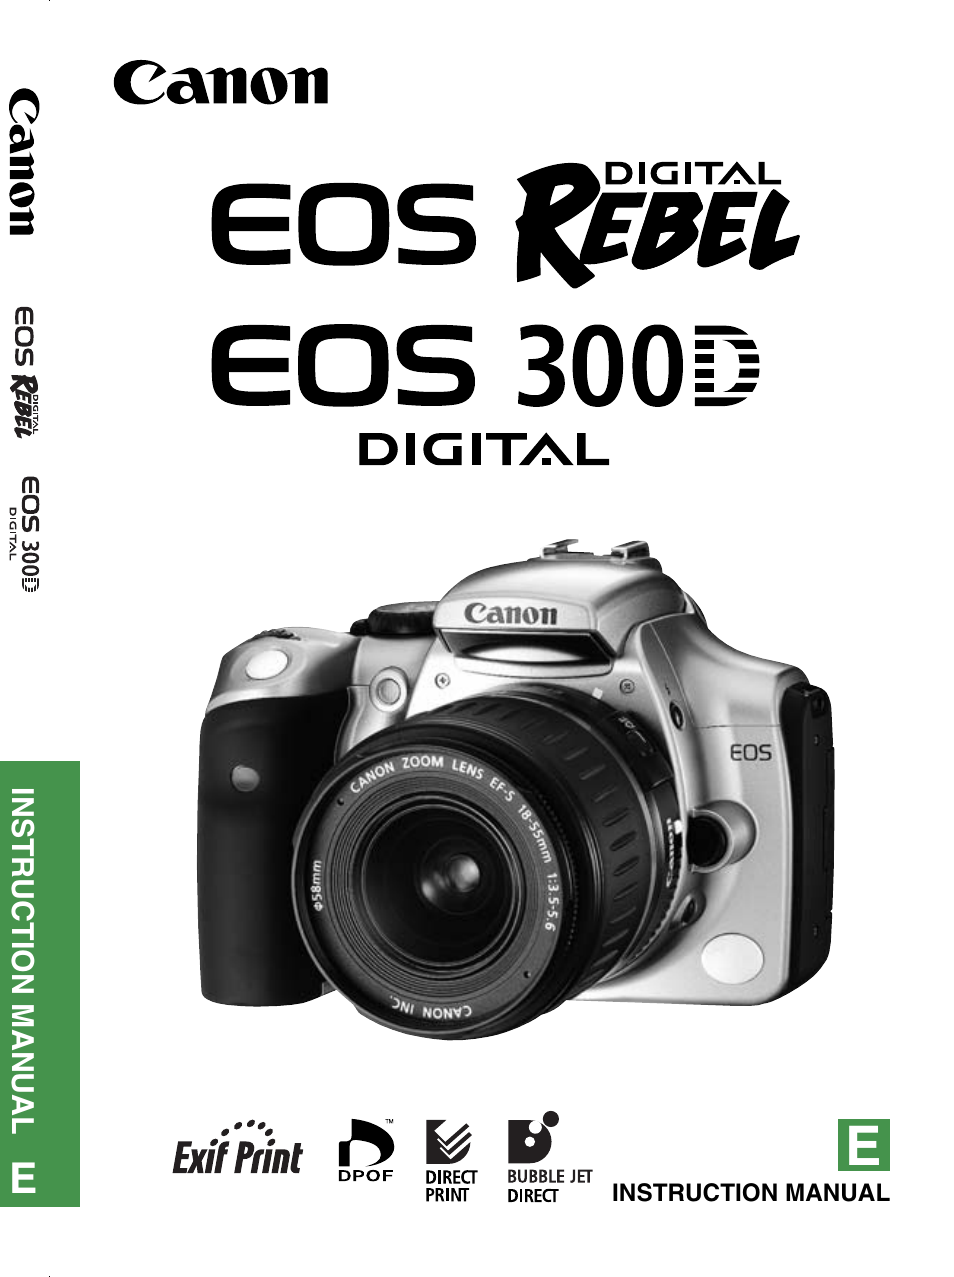 canon ds6041 user manual 140 pages also for eos 300d eos rebel rh manualsdir com Canon EOS Rebel XTi Troubleshooting descargar manual canon eos 400d español